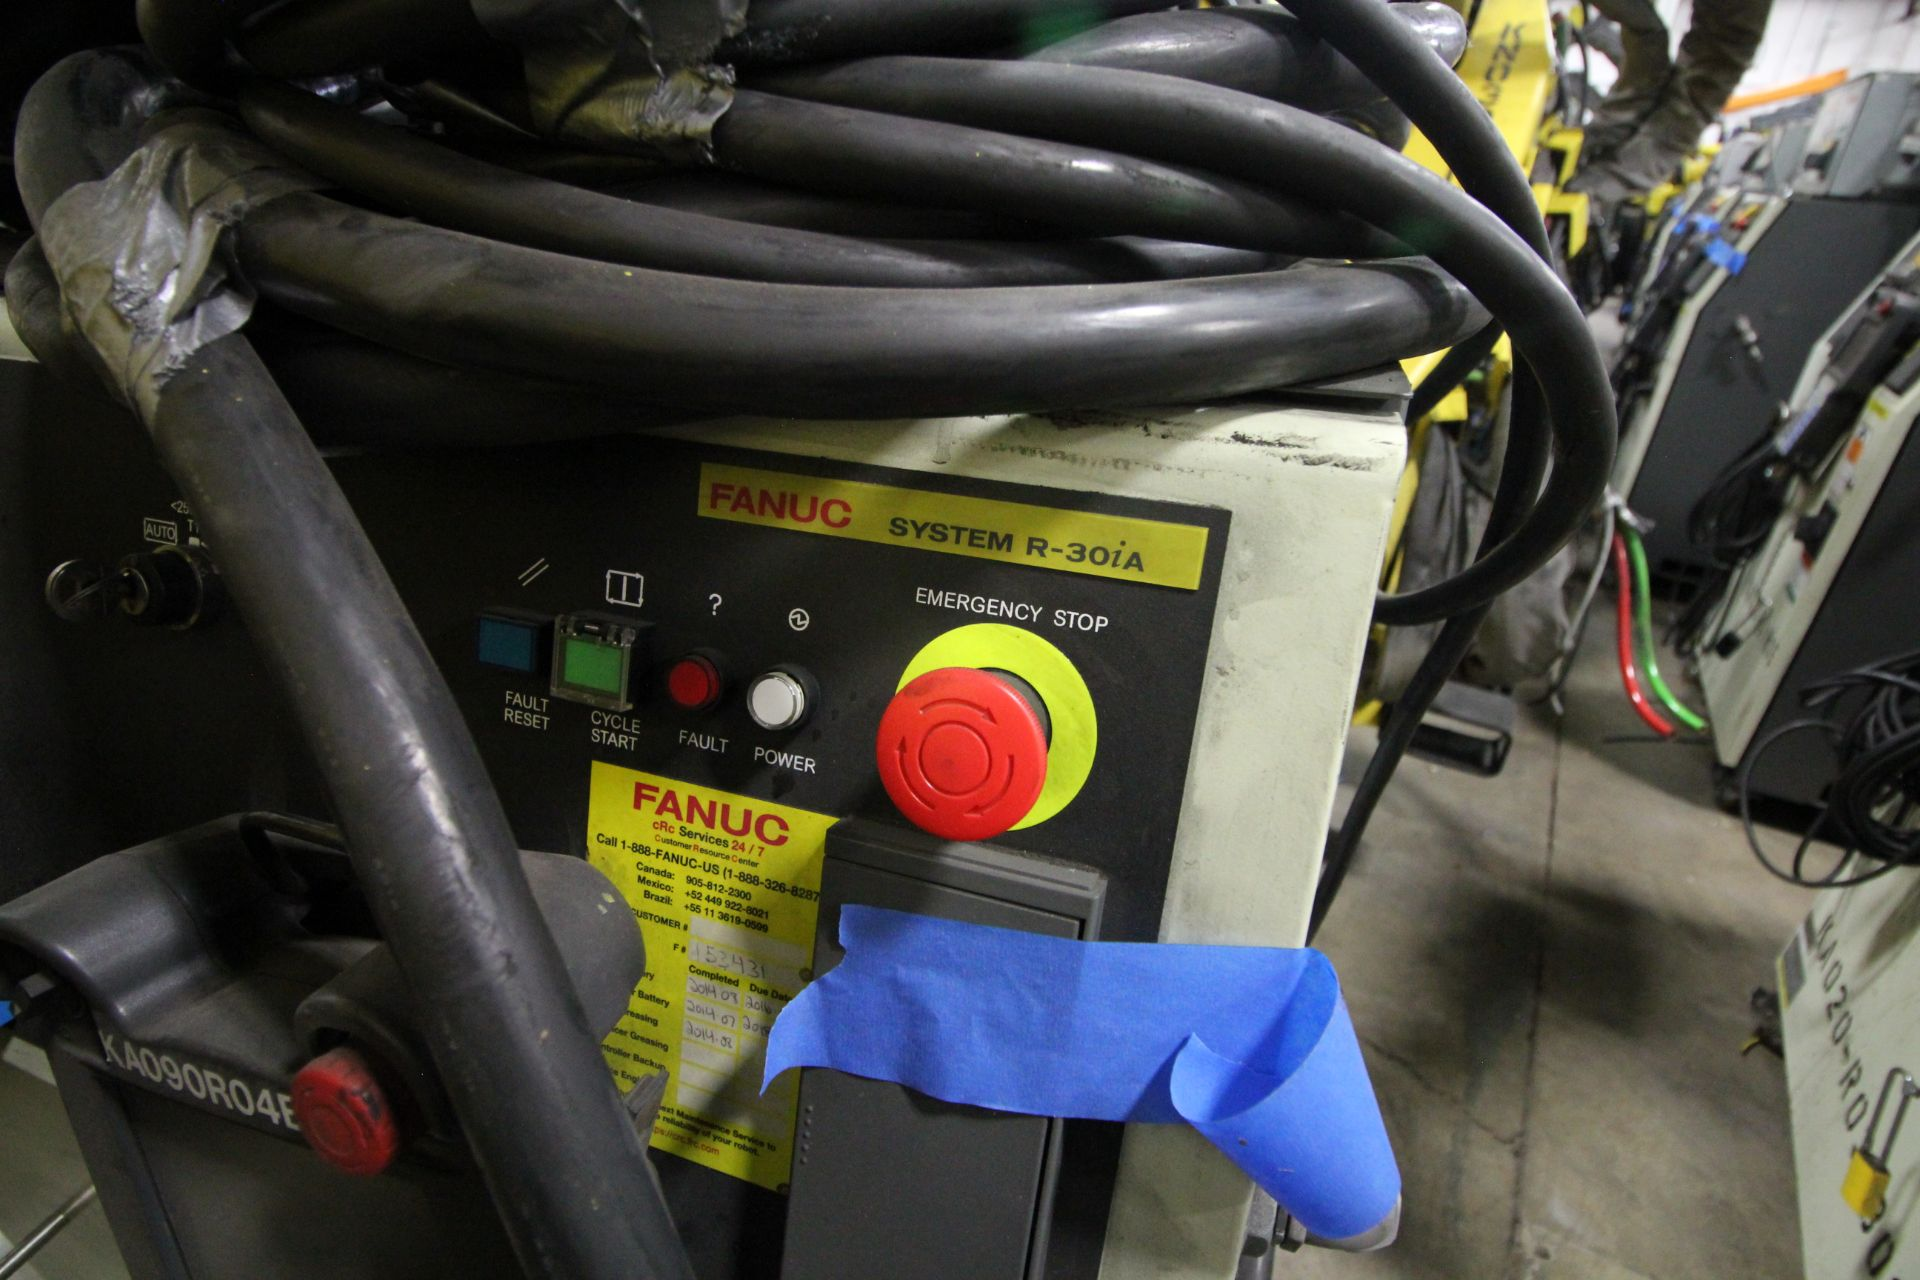 FANUC ROBOT M-900iA/400L WITH R-30iA CONTROLLER, TEACHPENDANT AND CABLES, SN 153431, YEAR 2014 - Image 9 of 11